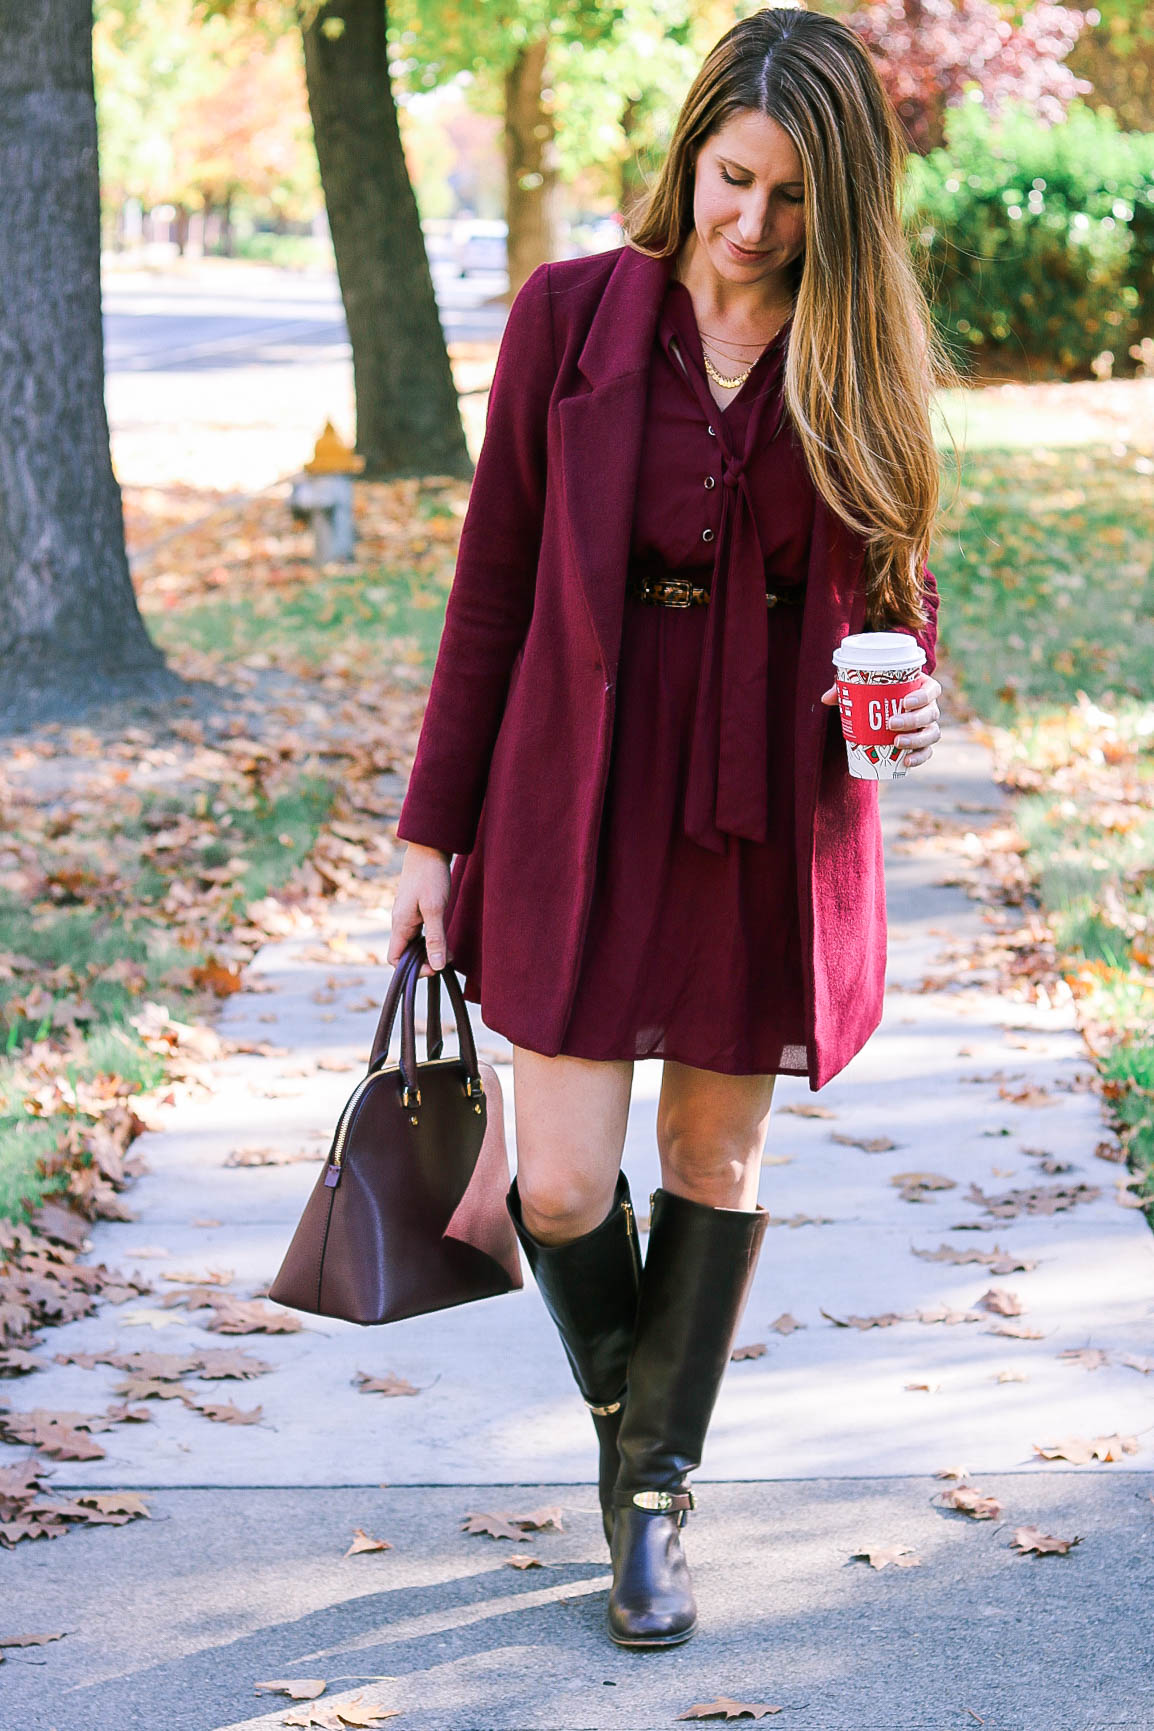 How to Wear a Burgundy Dress